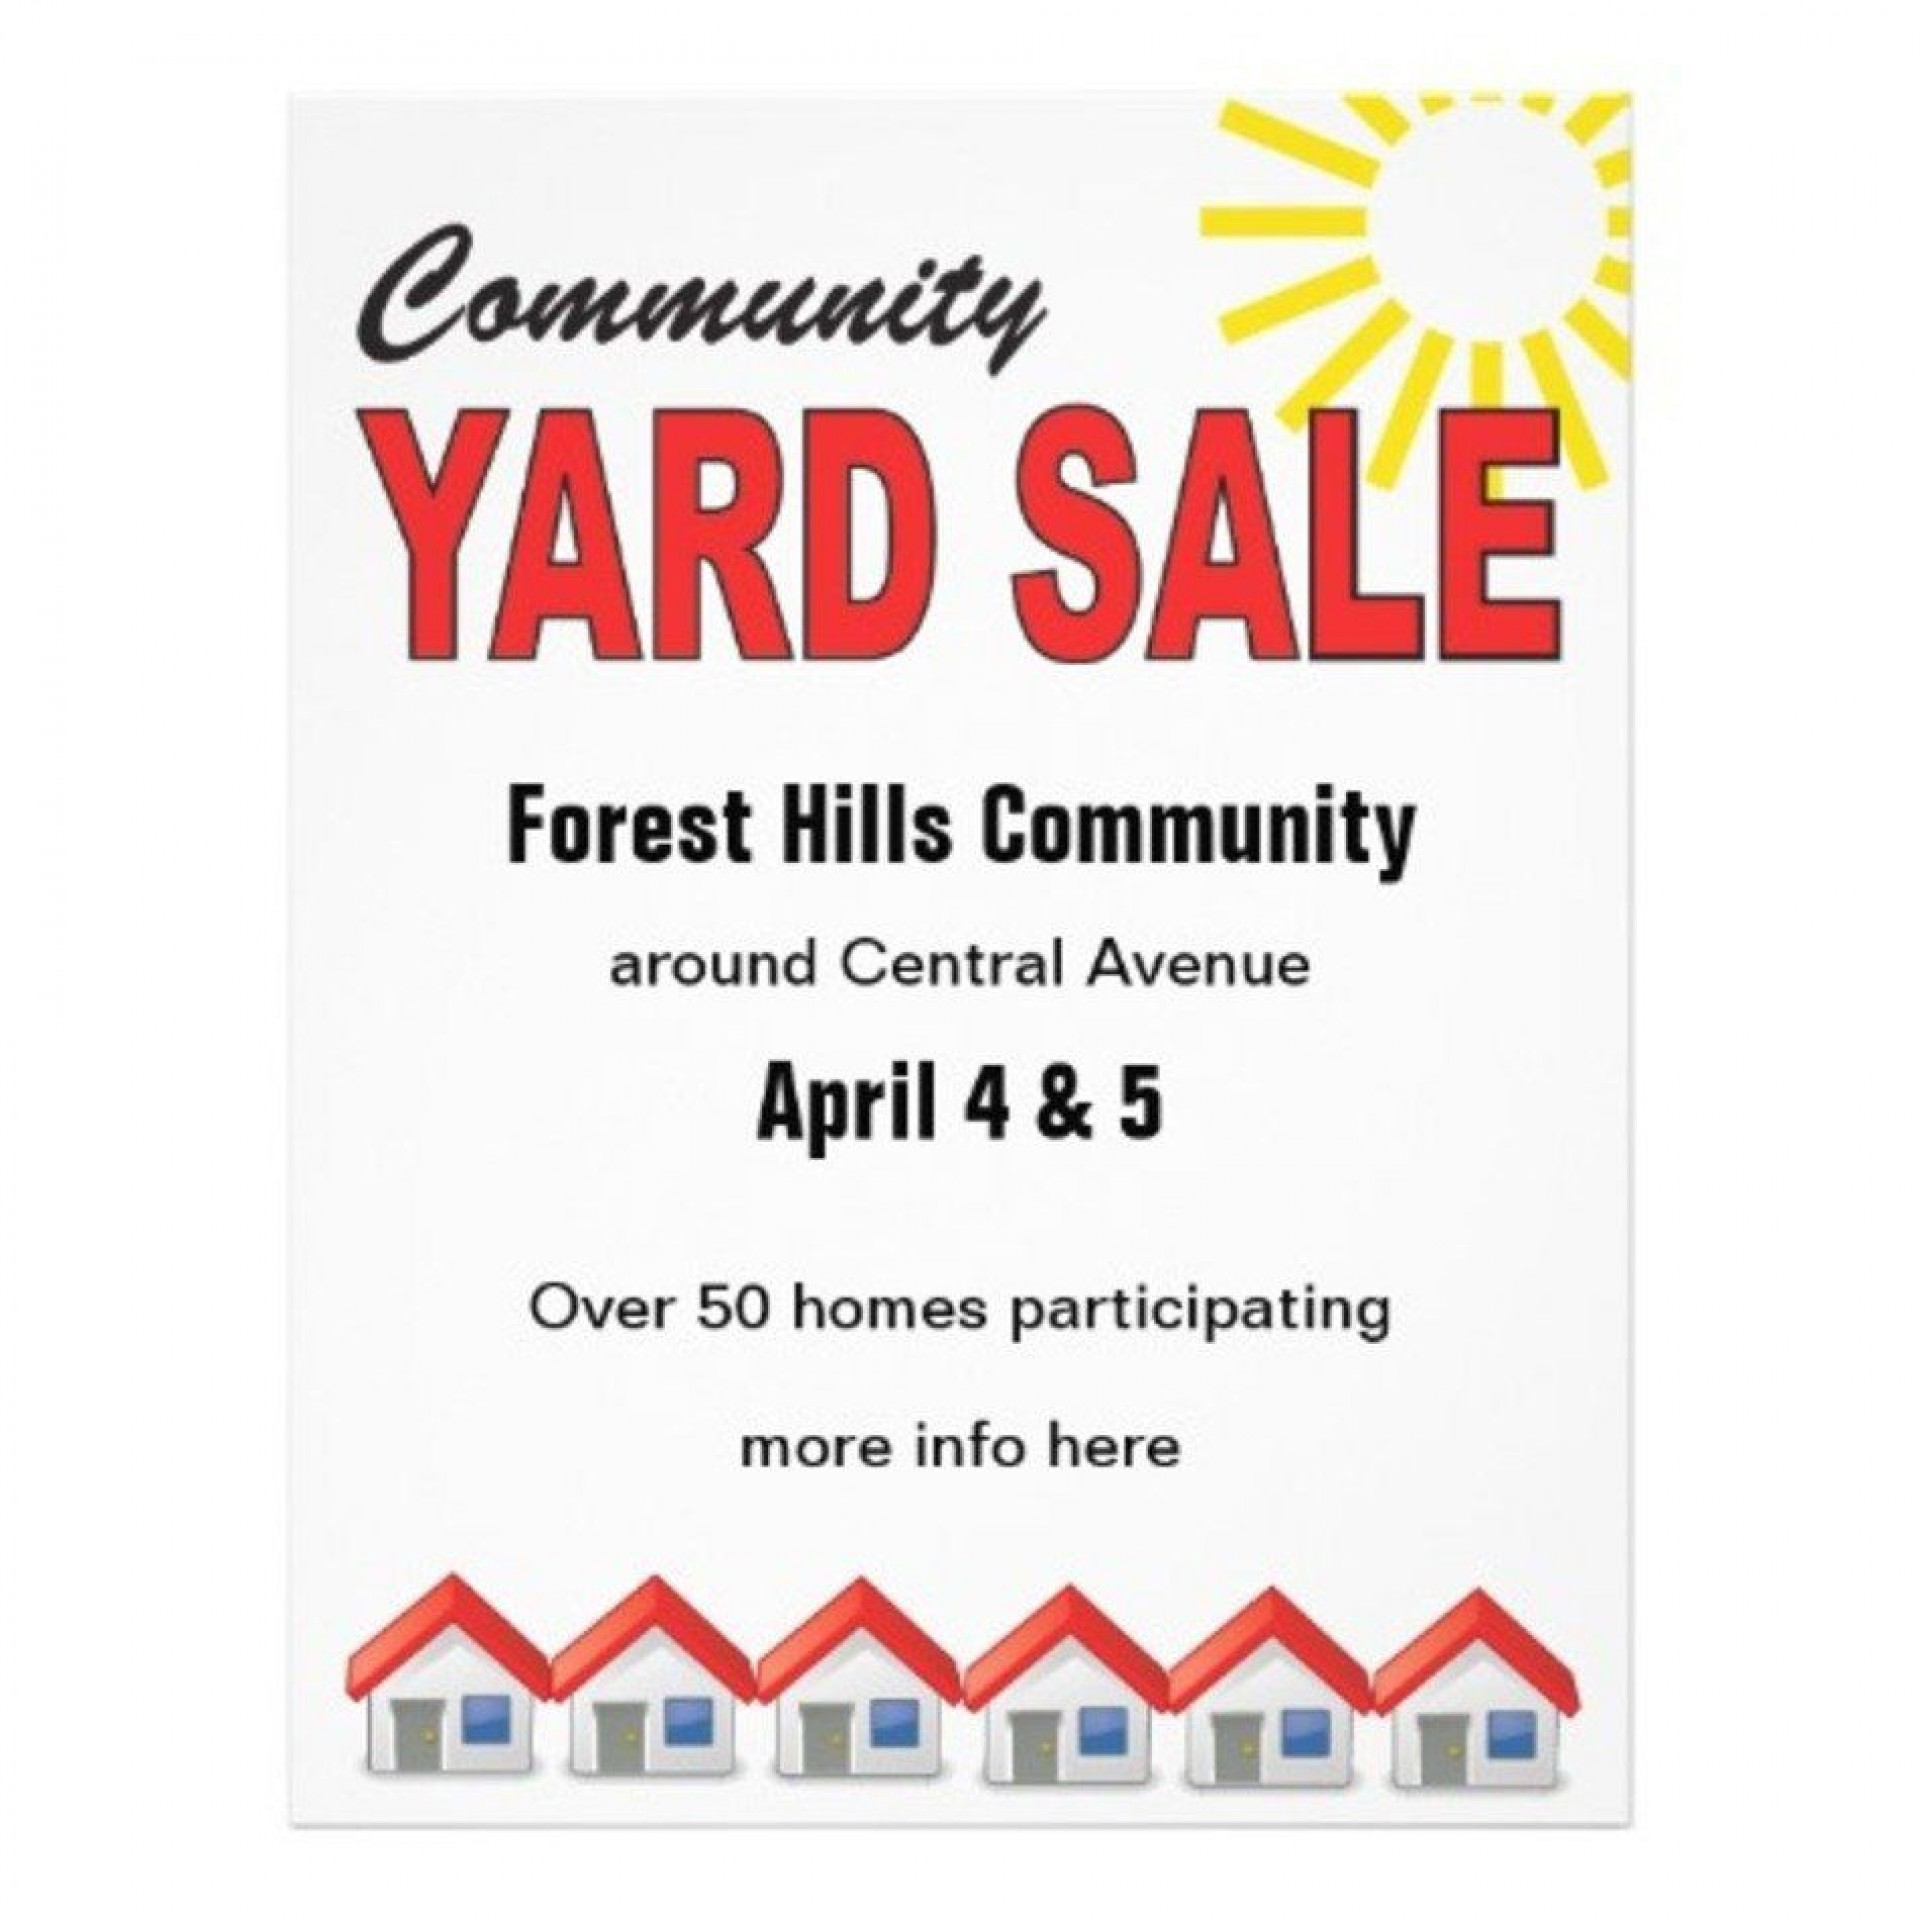 002 Formidable Yard Sale Flyer Template Free Sample  Community Garage1920